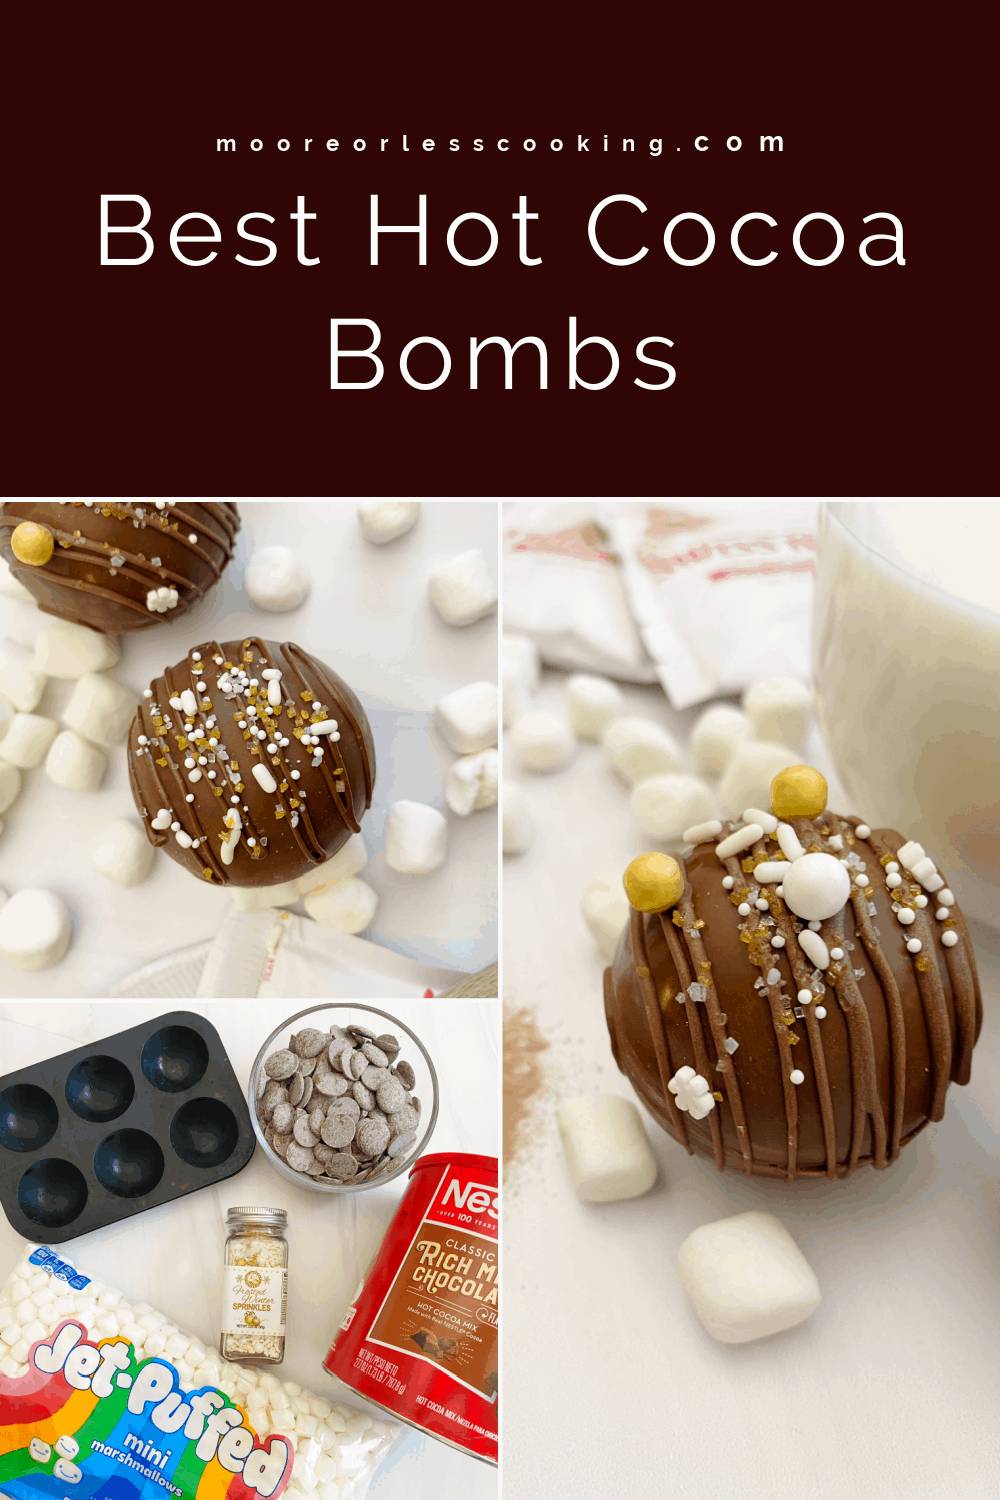 Filled with cocoa mix and marshmallows, these hot cocoa bombs are an adorable way to make a mug of cozy hot chocolate. Kids as well as adults love the chocolate explosion of deliciousness that magically turns into everyone's favorite warm beverage. via @Mooreorlesscook